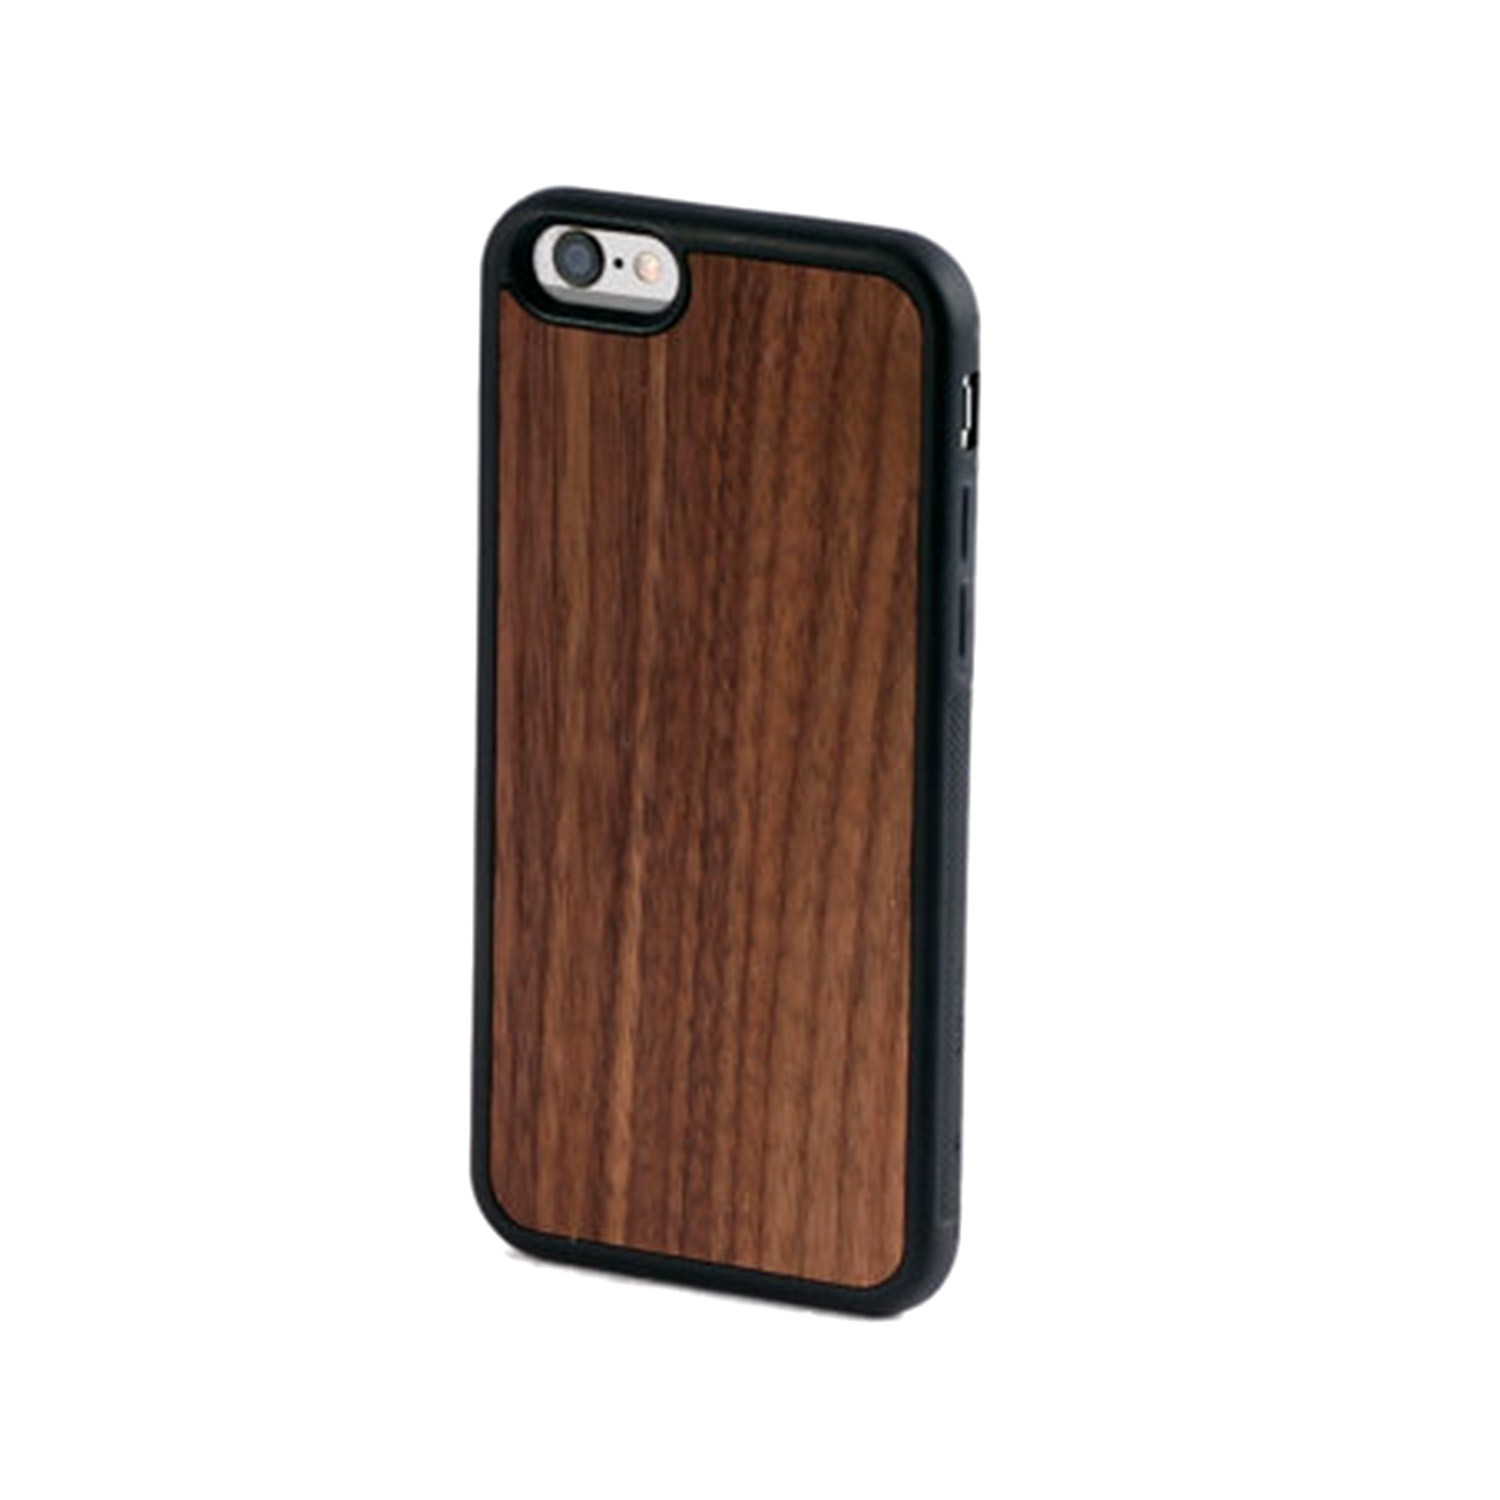 Iphone Case Walnut Wood Iphone 5 5s Touch Of Wood